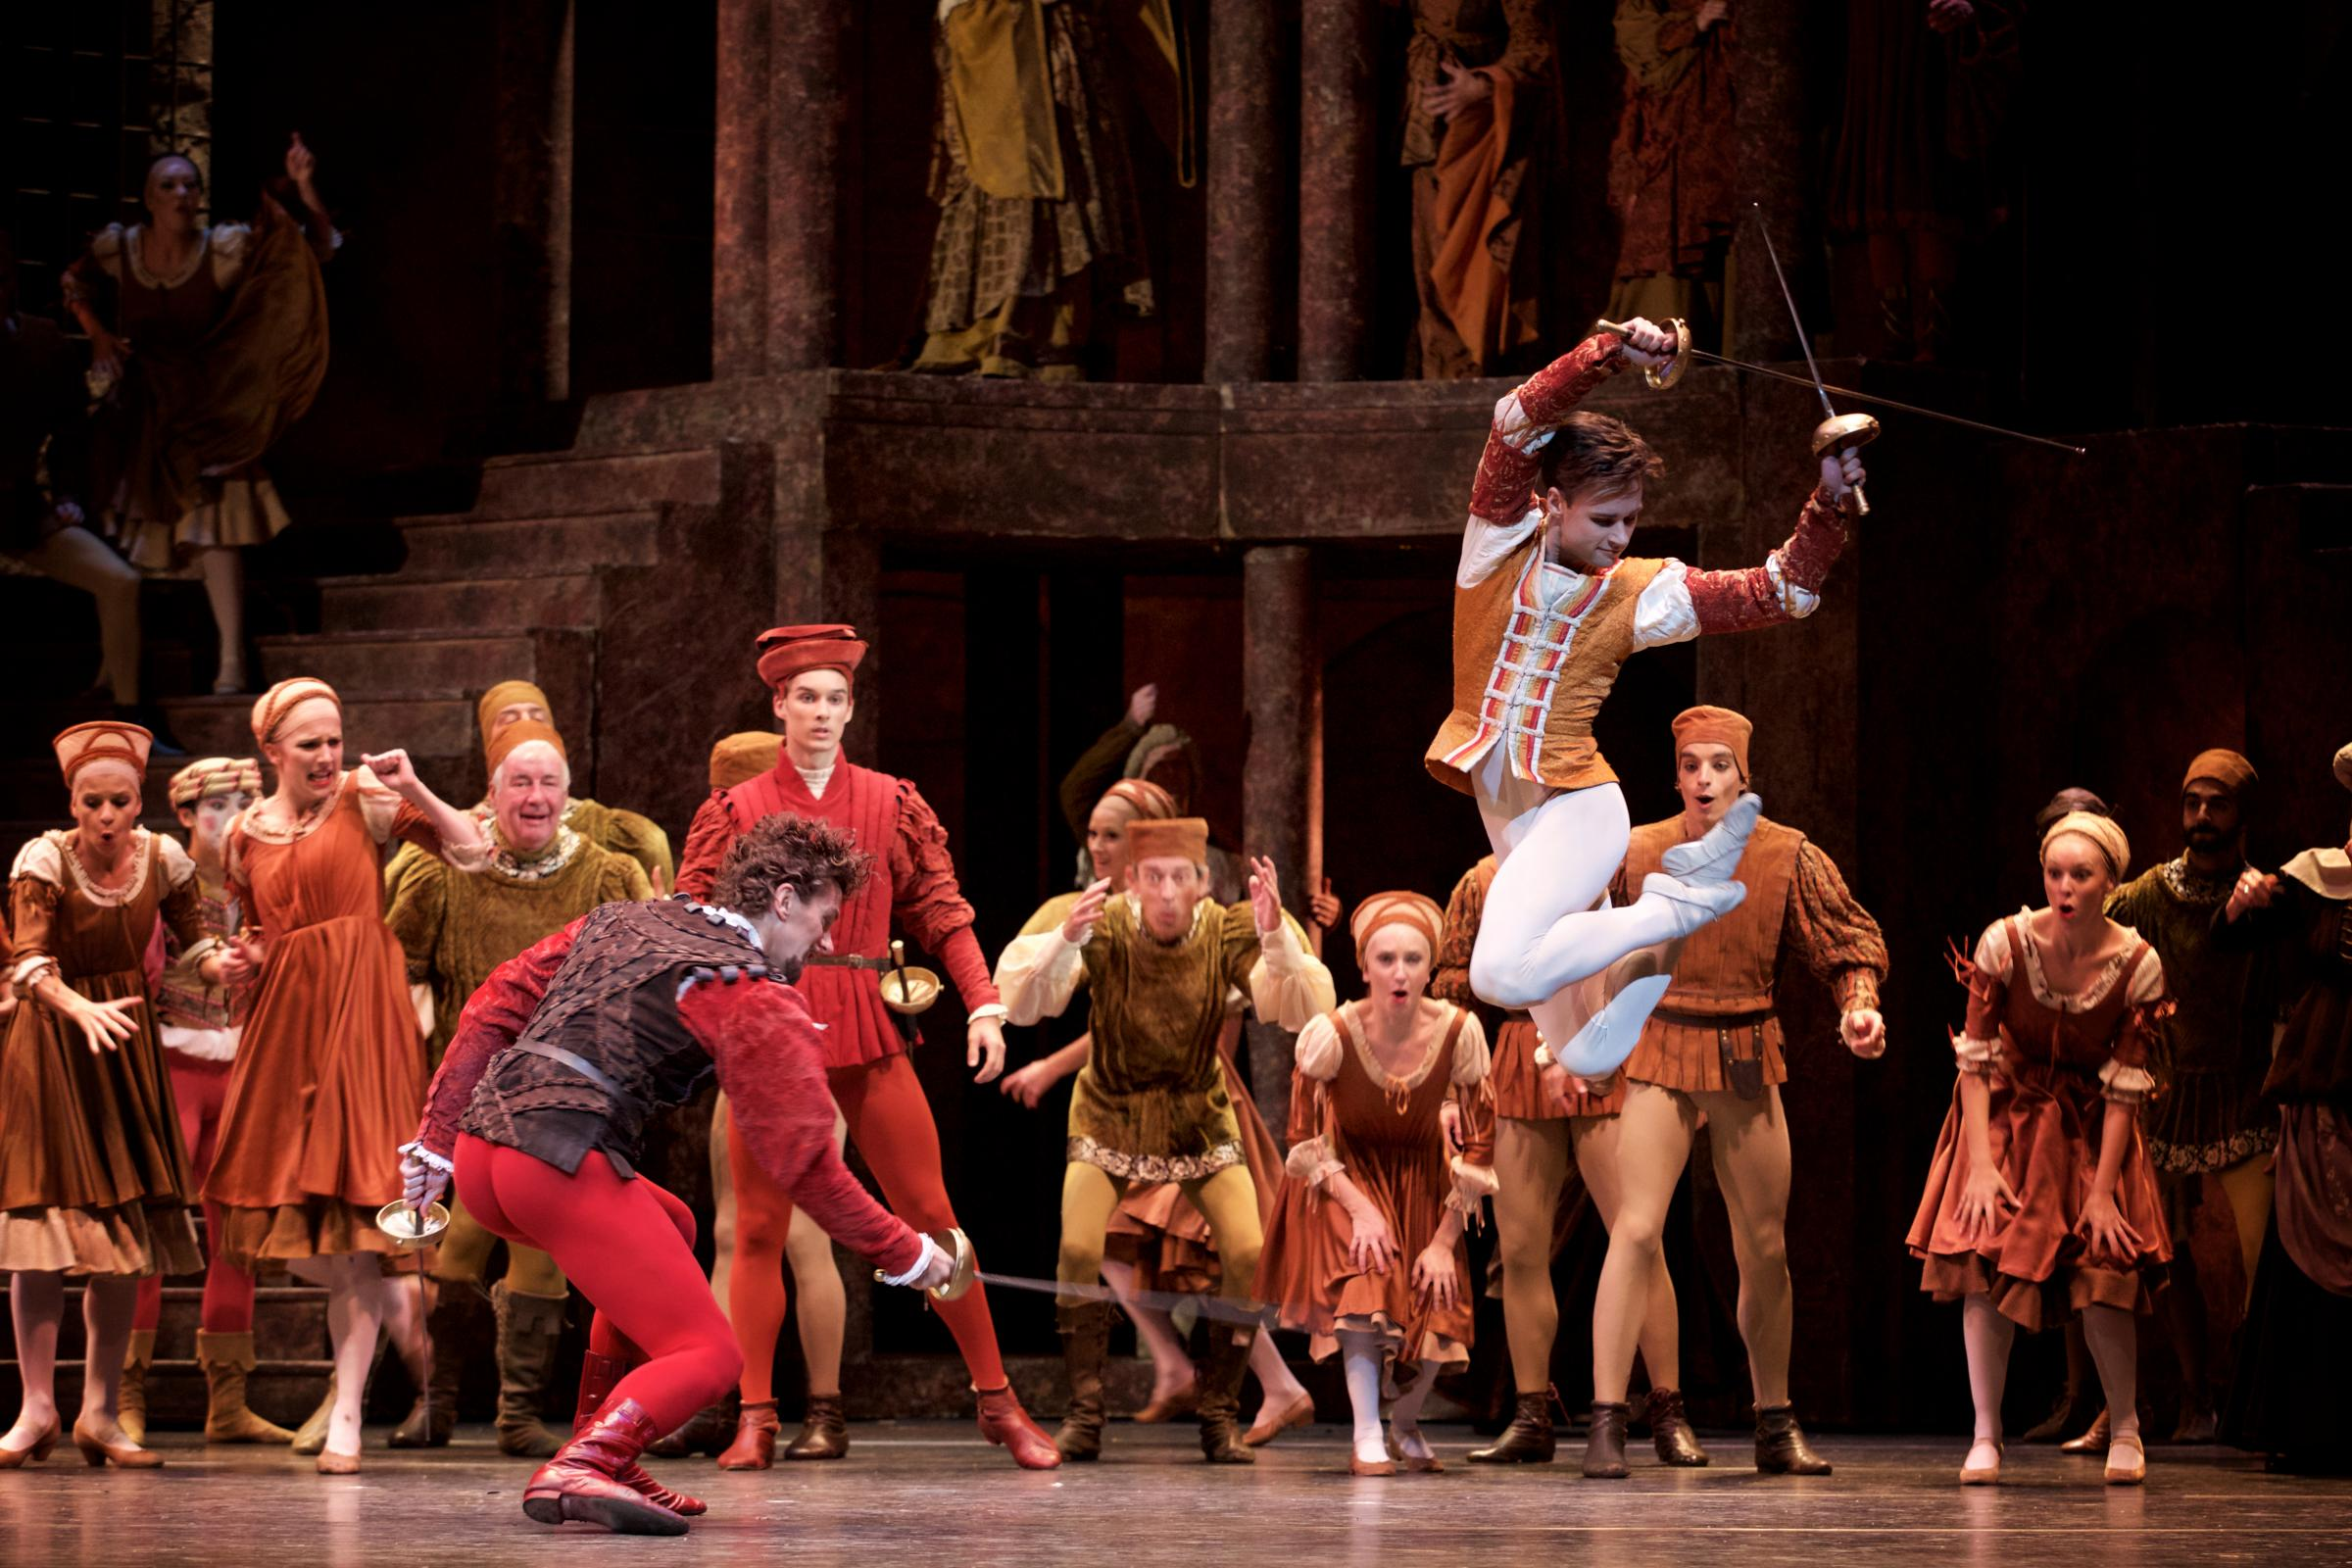 Royal Opera House's Romeo and Juliet to be screened for FREE at Walton Hall